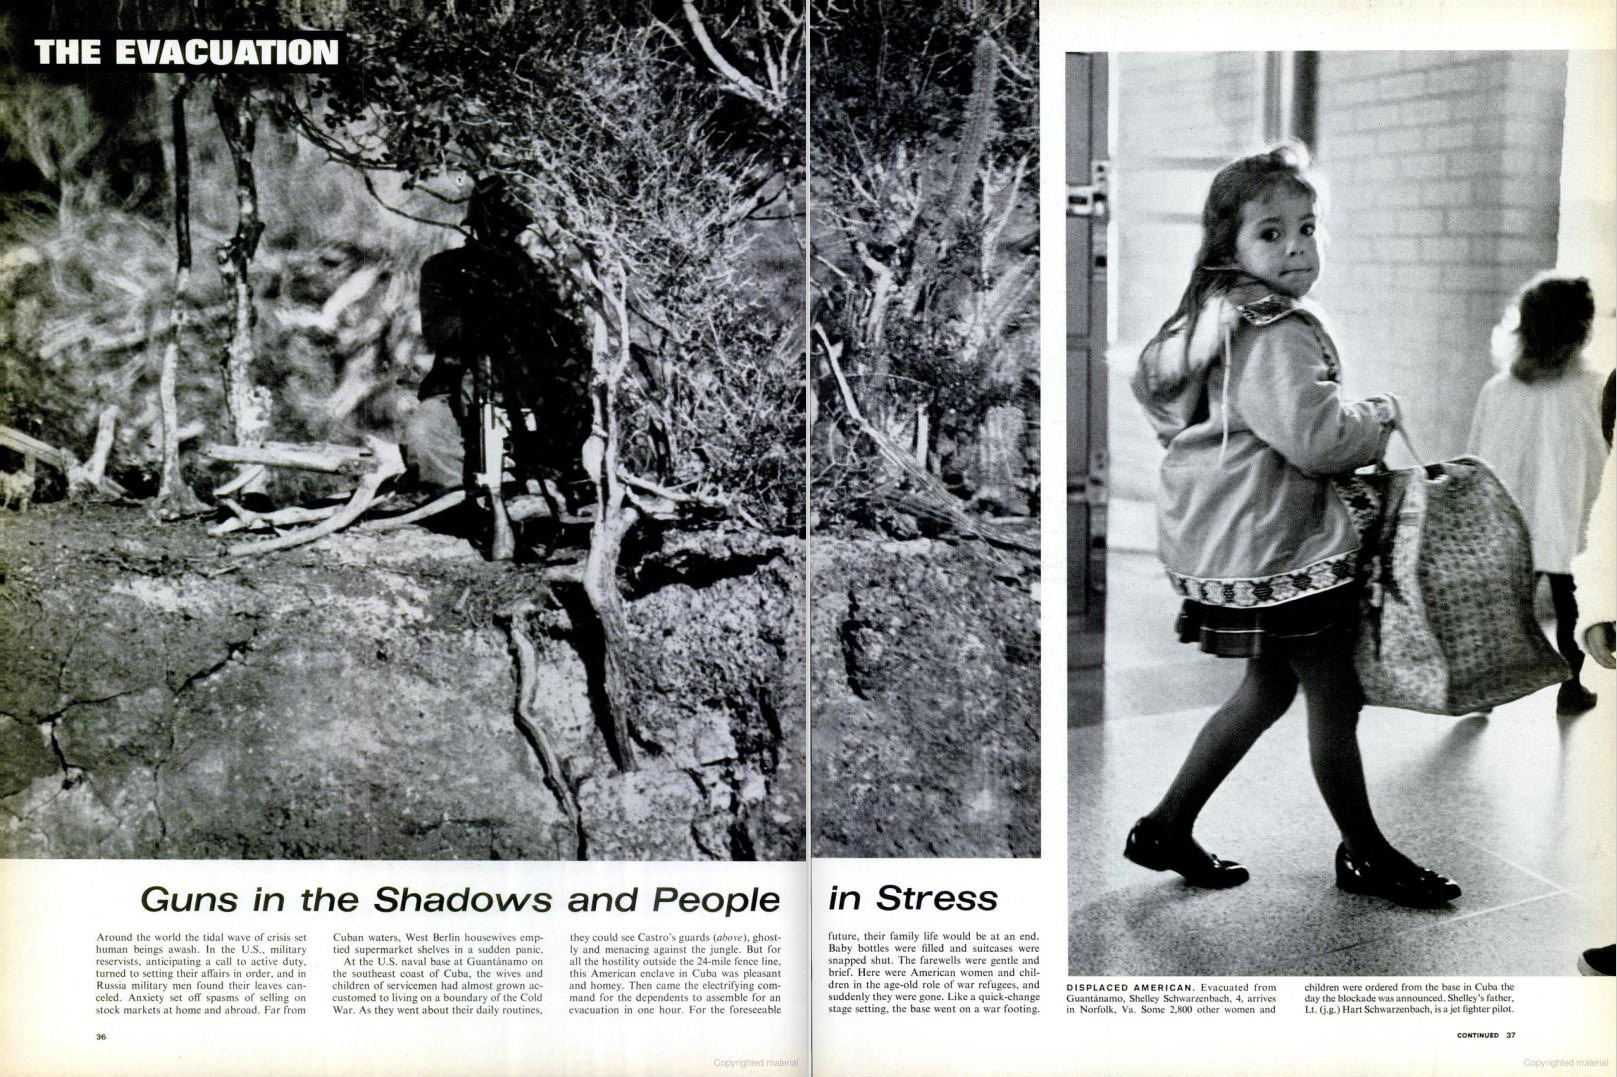 November 2, 1962 issue of LIFE magazine. Spread shows the shadow of a Cuban guard outside of Guantanamo and the daughter of a jet fighter pilot arriving in Virginia after evacuating from Guantanamo.